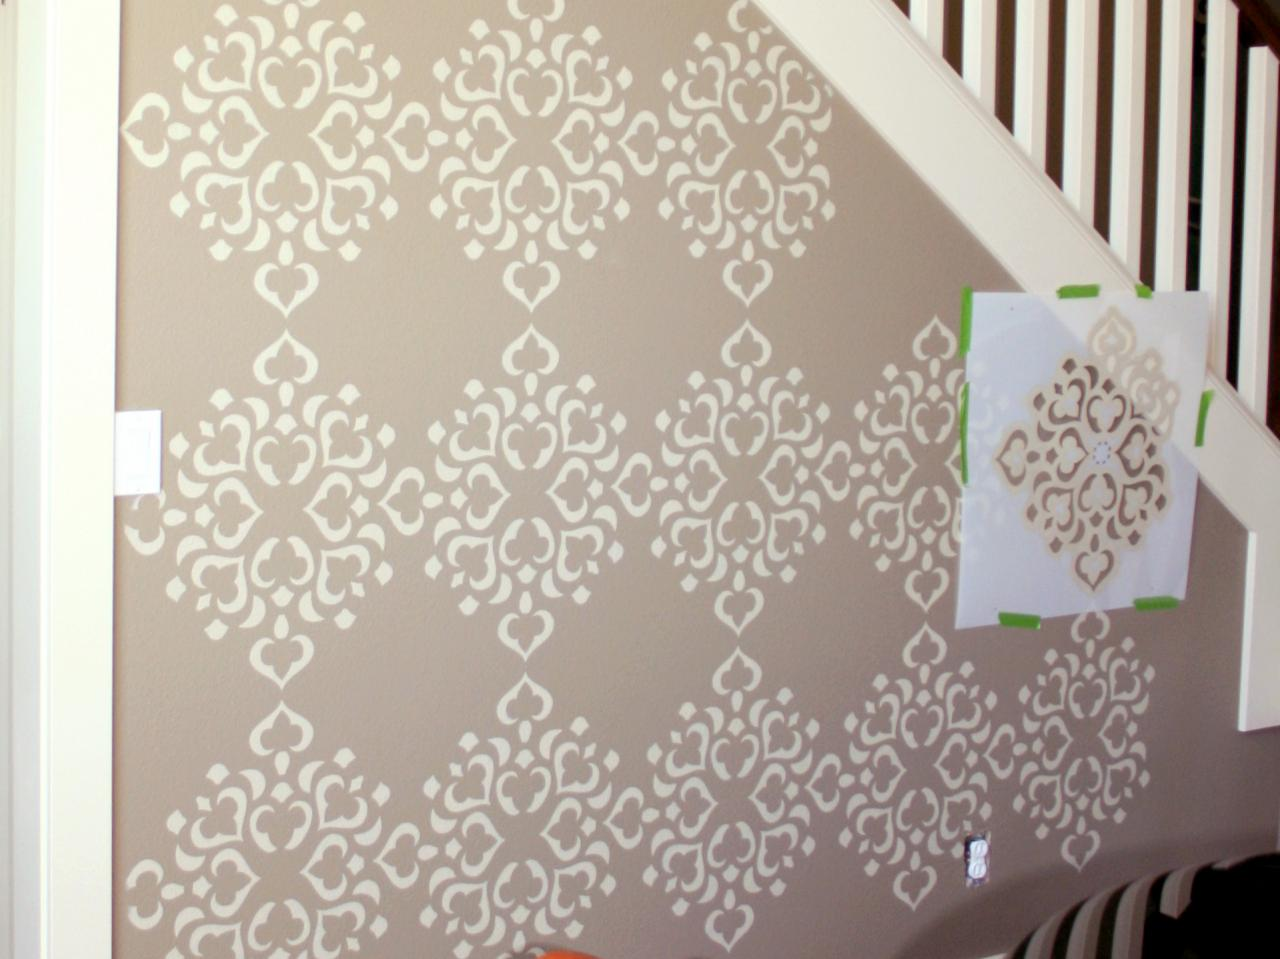 bedroom stencil ideas. Wall Stencils Extend Design To Edges UGPXKZL Give Your Home A Dramatic Look With The Help Of